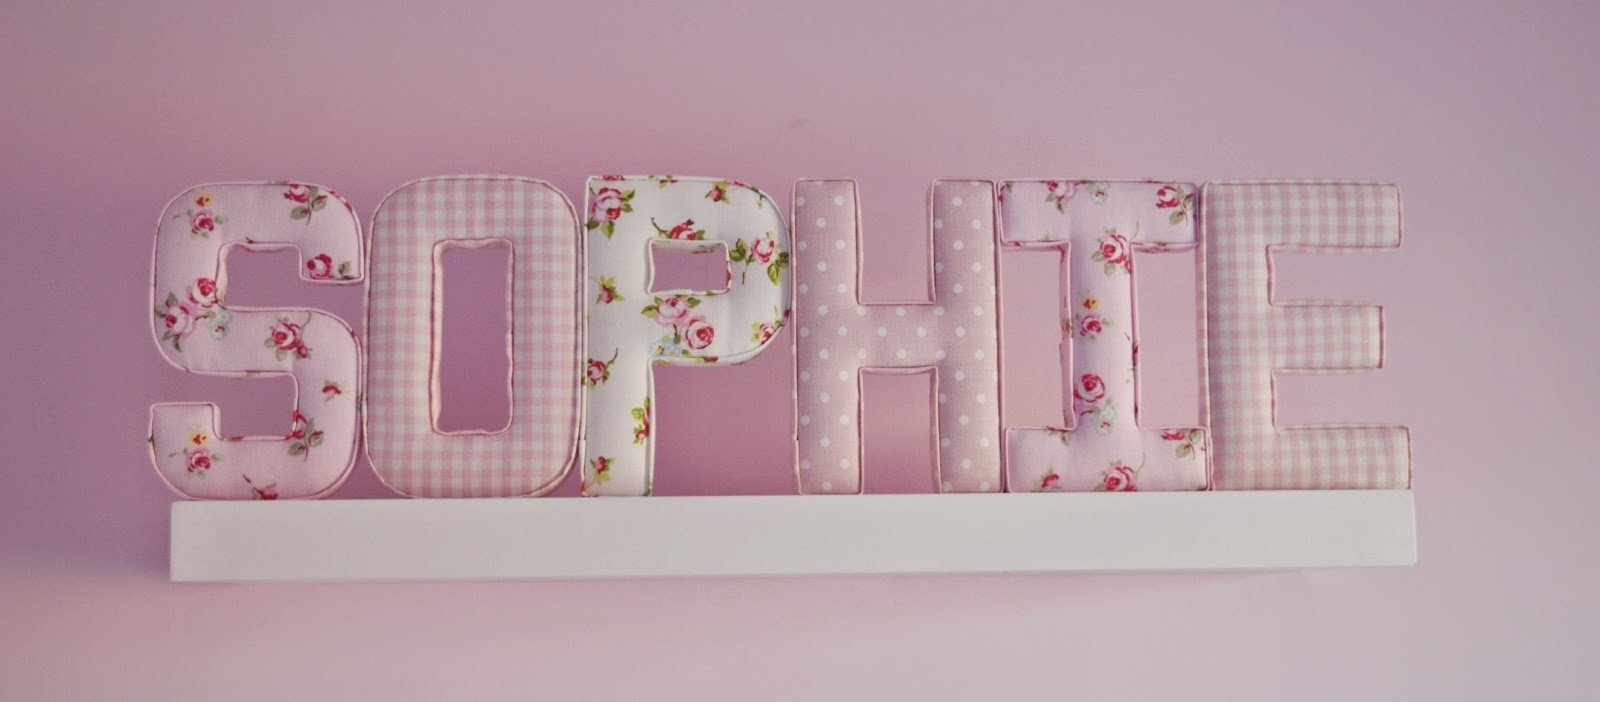 Bedroom. Cute Baby Room Name Letters Ideas As Bedroom Decorations With Regard To Most Popular Baby Nursery Fabric Wall Art (Gallery 12 of 15)